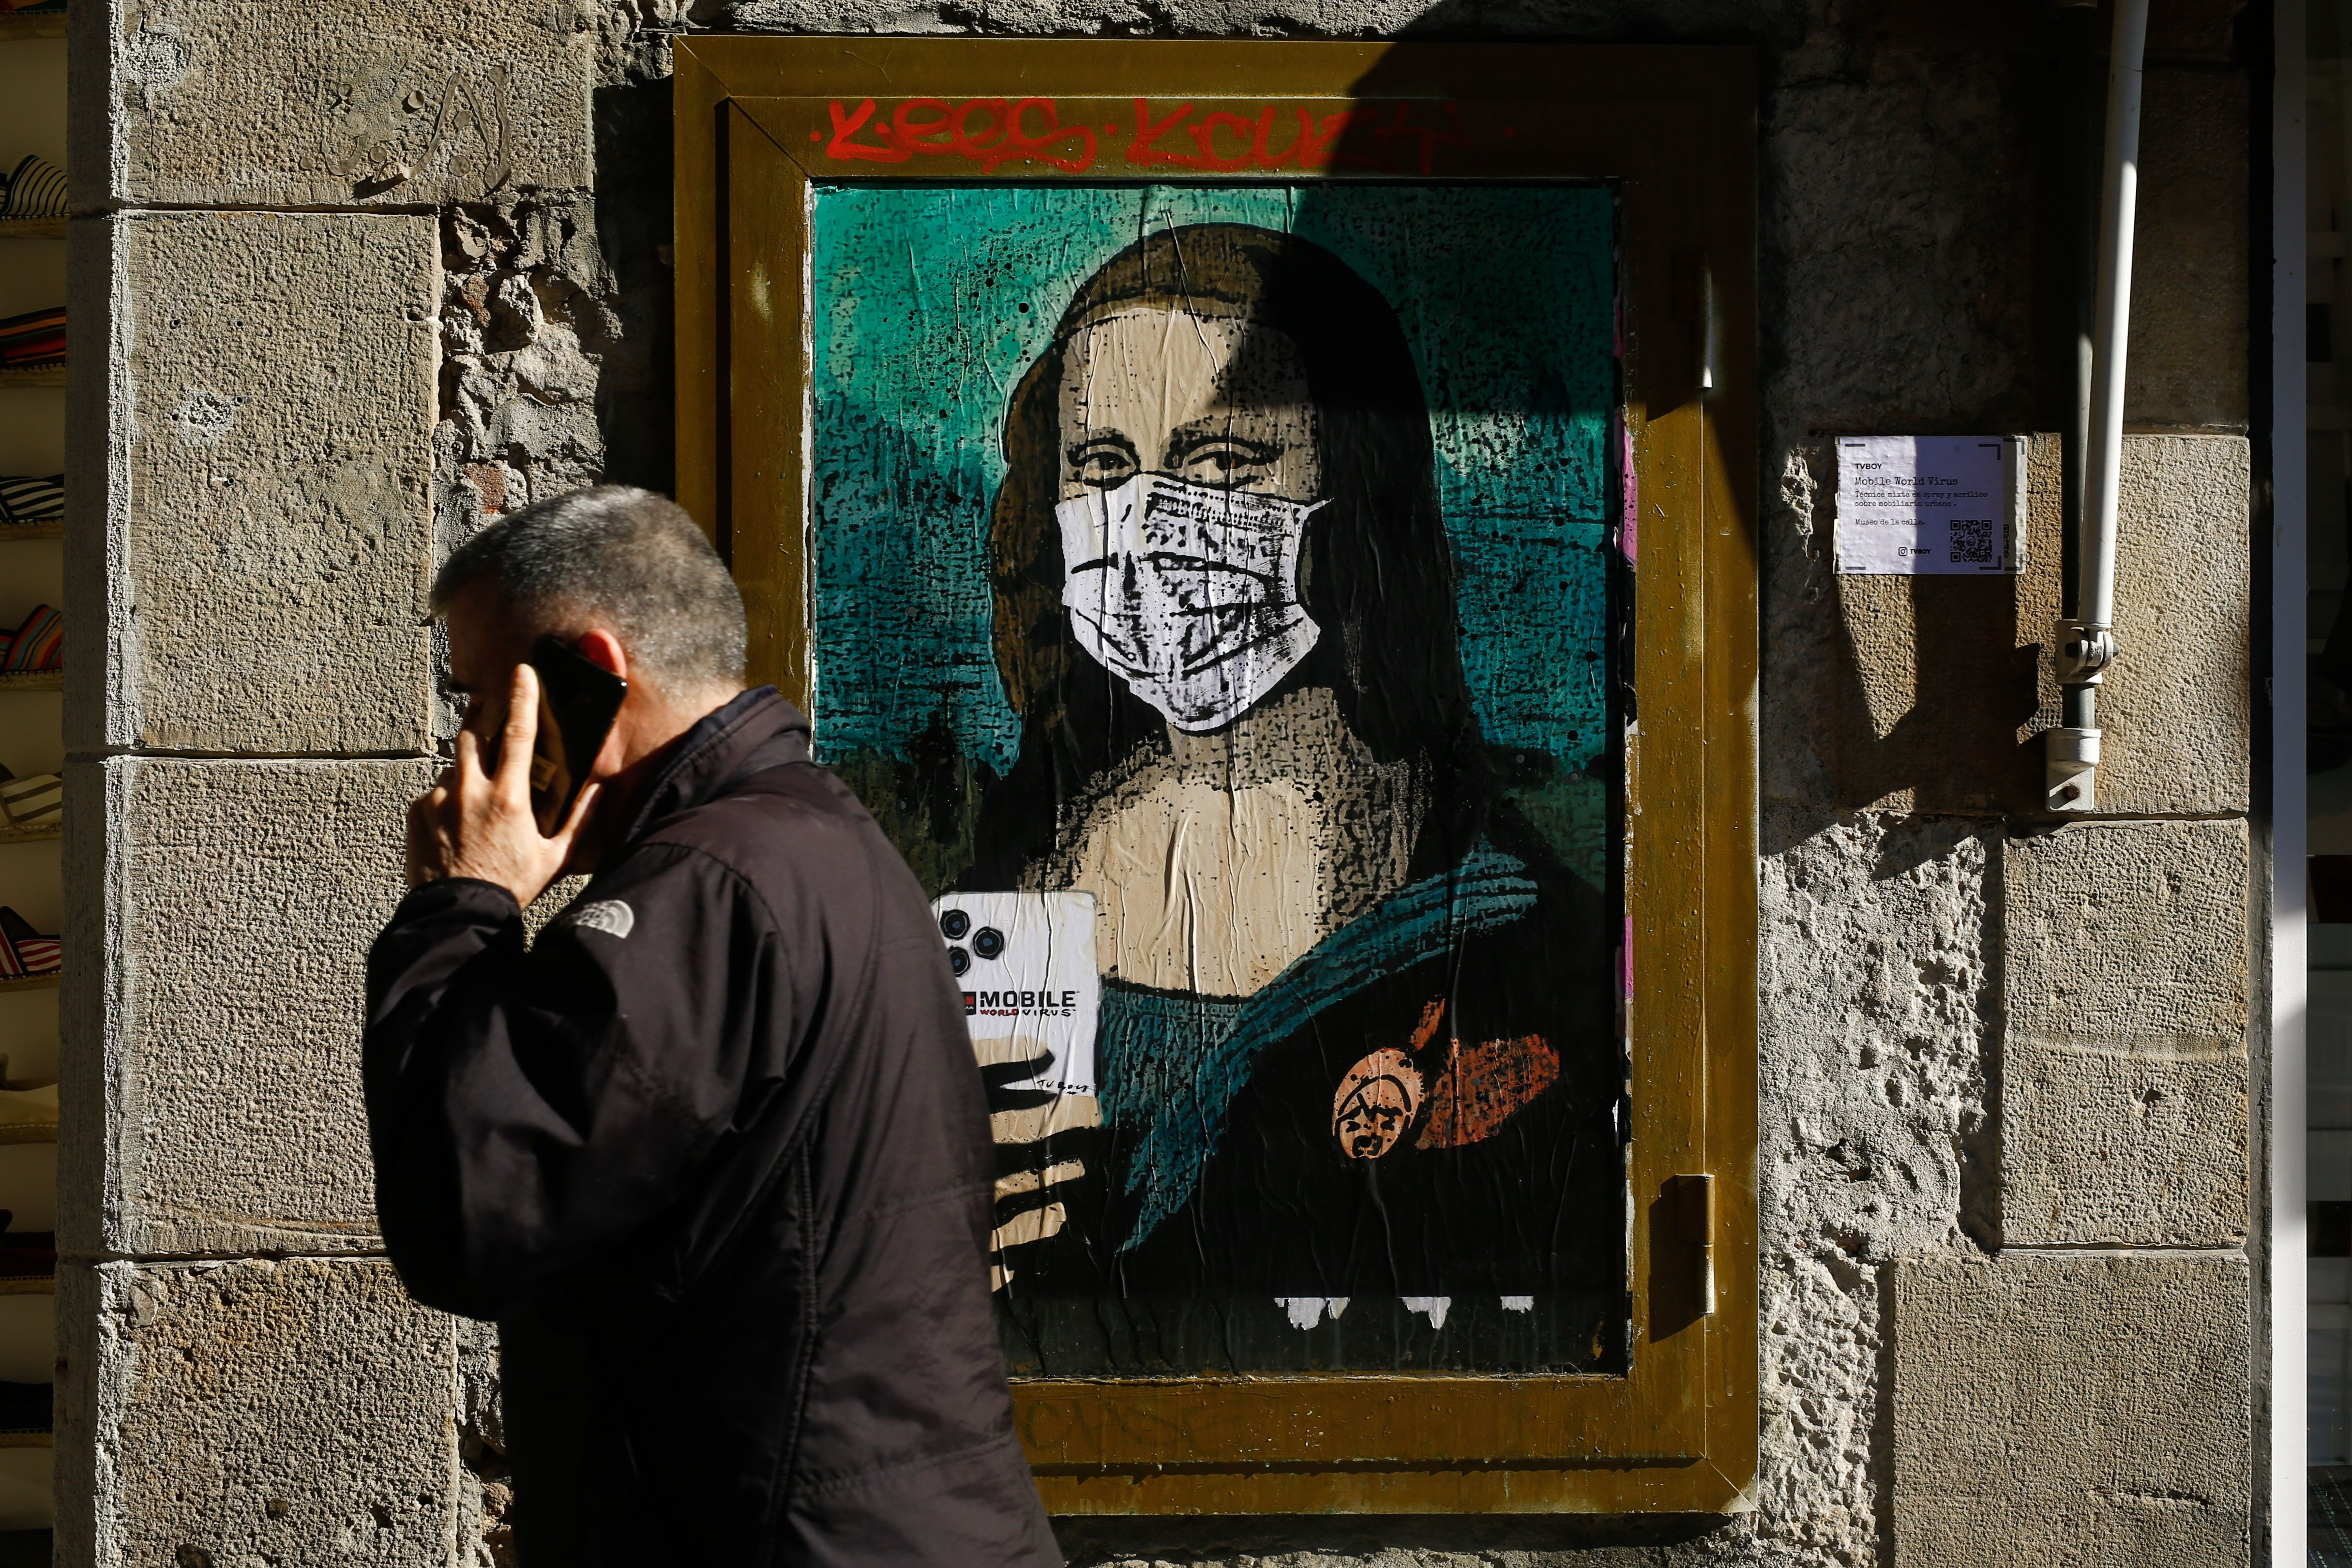 Pedestrians walk past a painting of the Mona Lisa holding a phone and wearing a breathing mask.